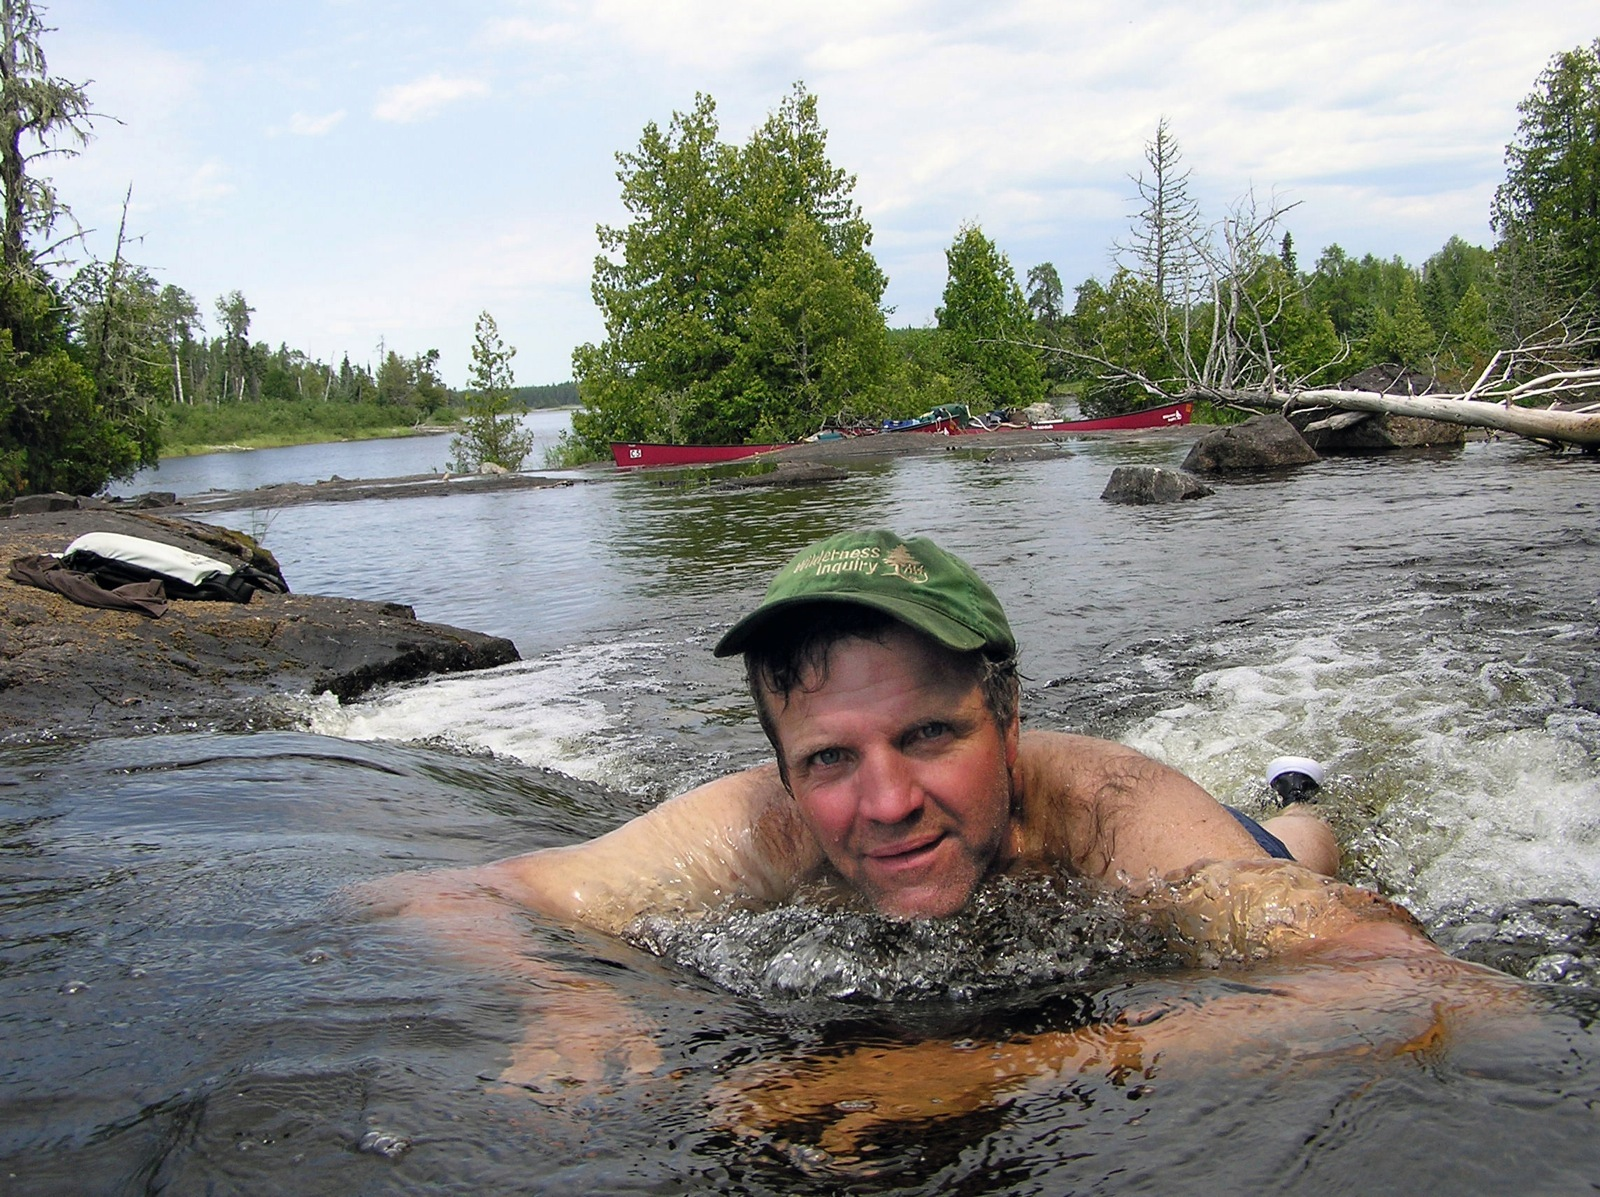 Paul Schurke takes a swim in a small waterfall in a stream in the Wabakimi Provincial Park.